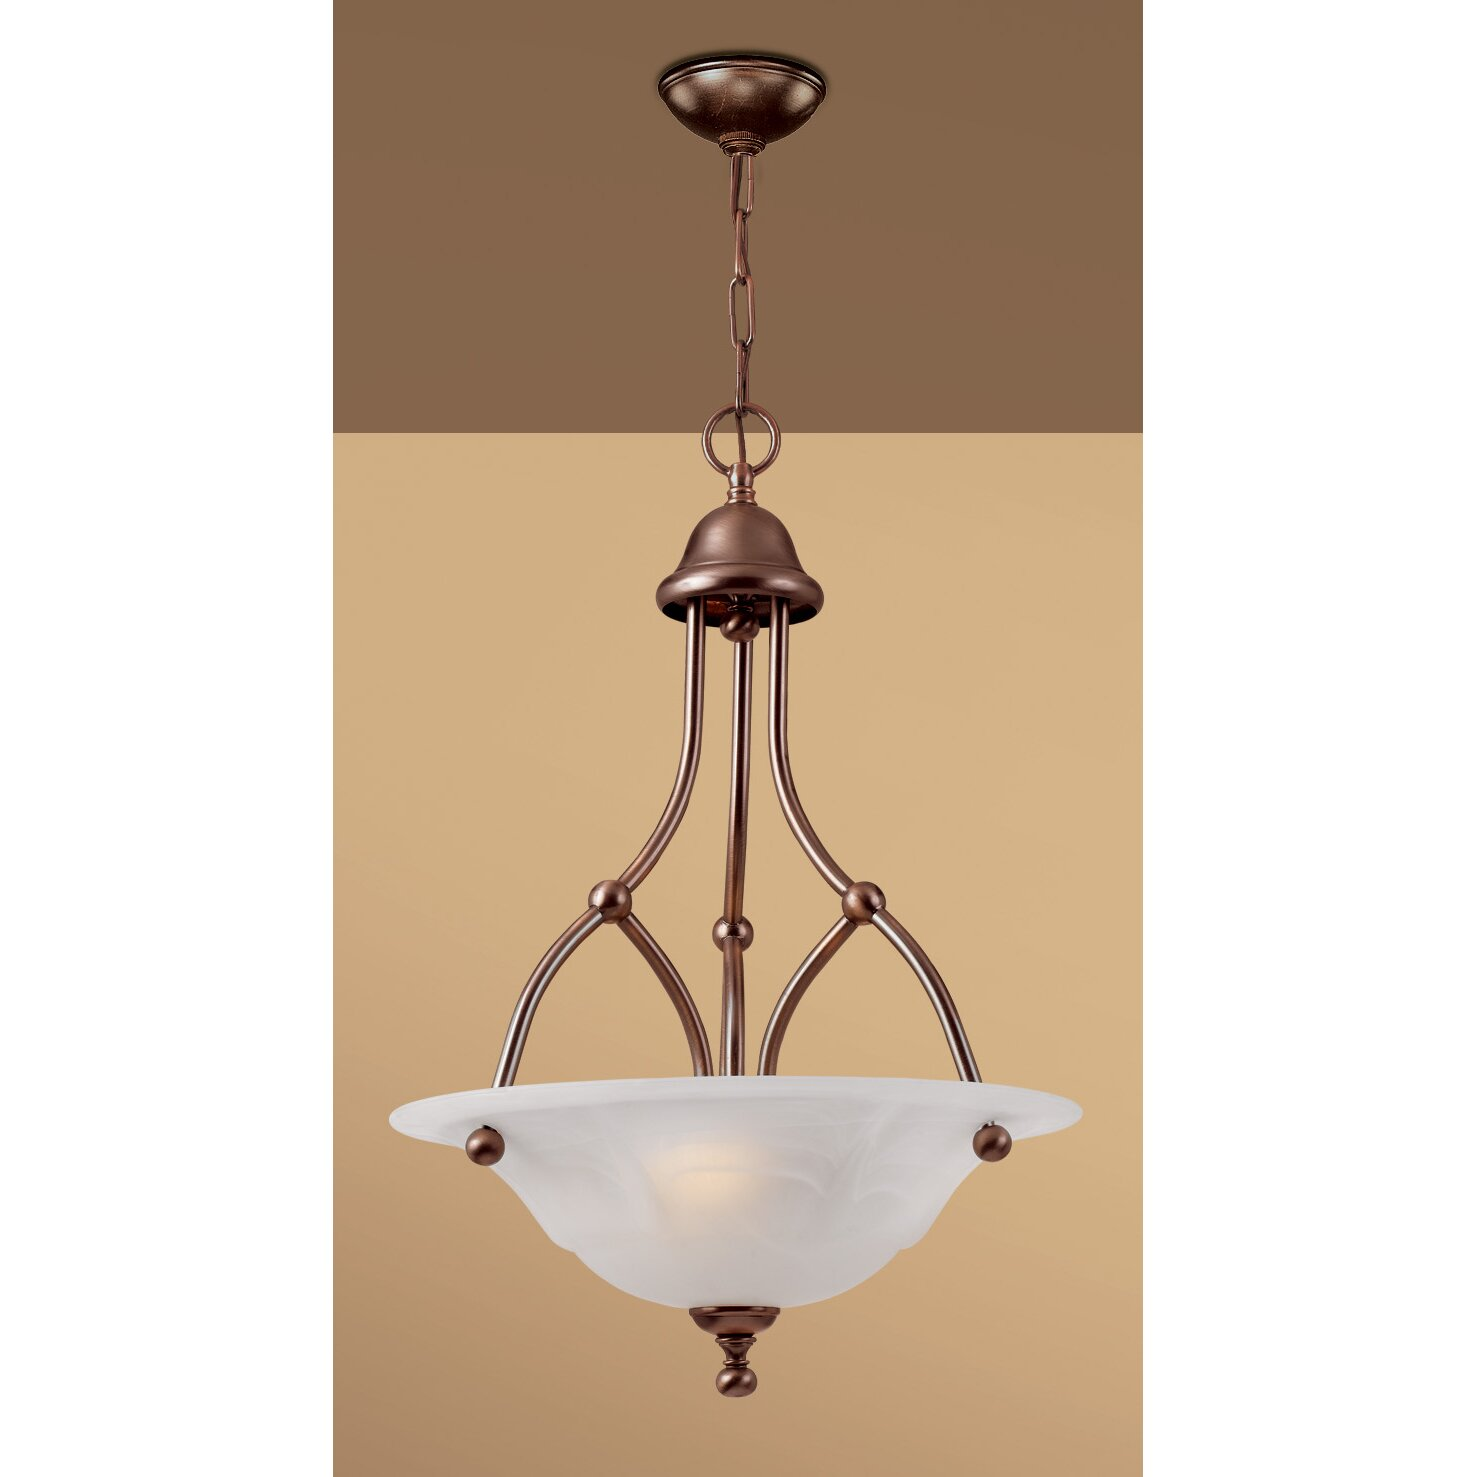 Wayfair Chandelier: Classic Lighting Providence 3 Light Chandelier